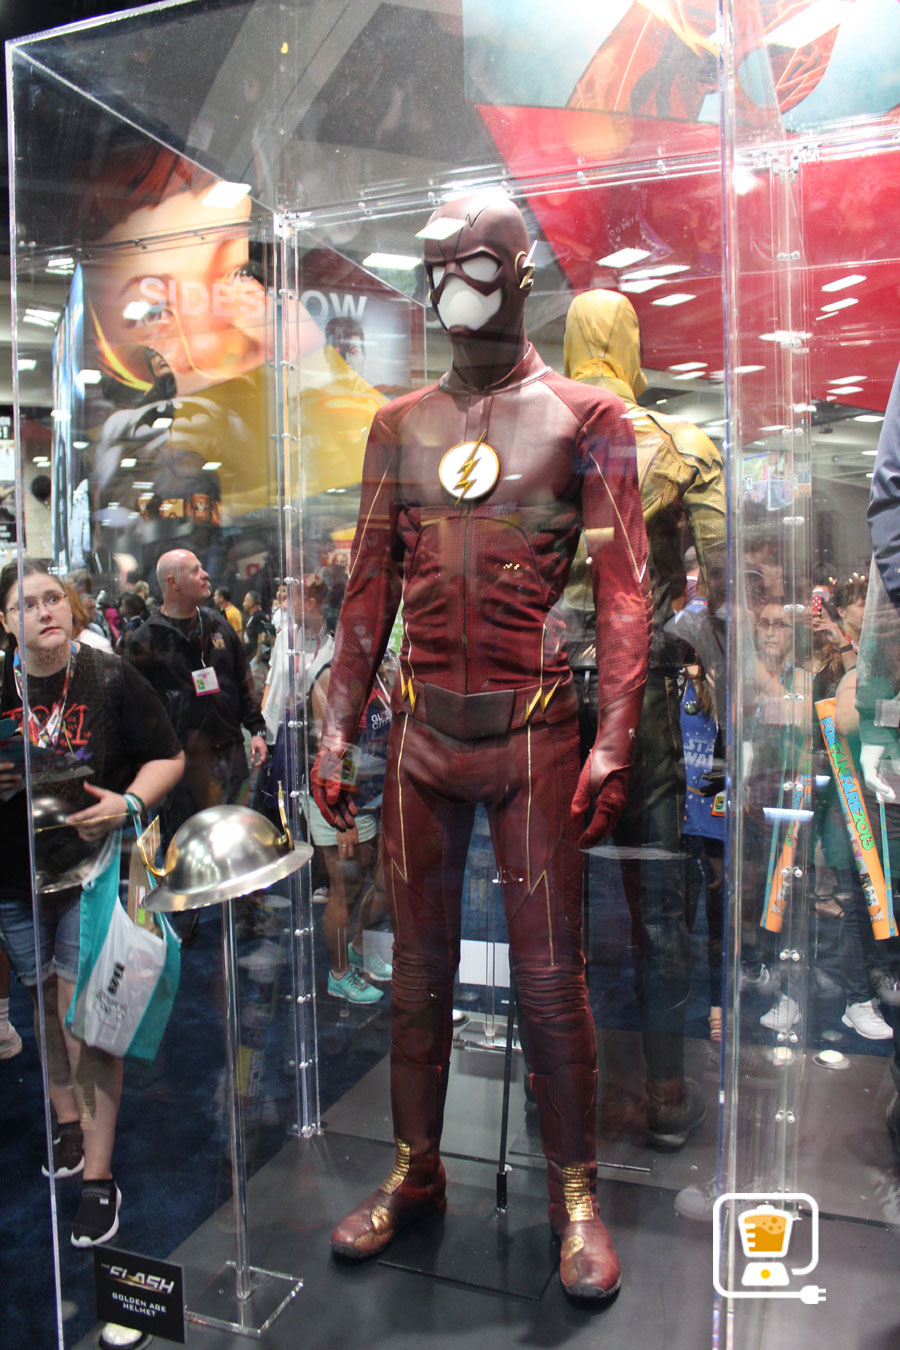 See Flash And Arrow's Amazing Costumes And Gadgets On Display At Comic-Con #32884